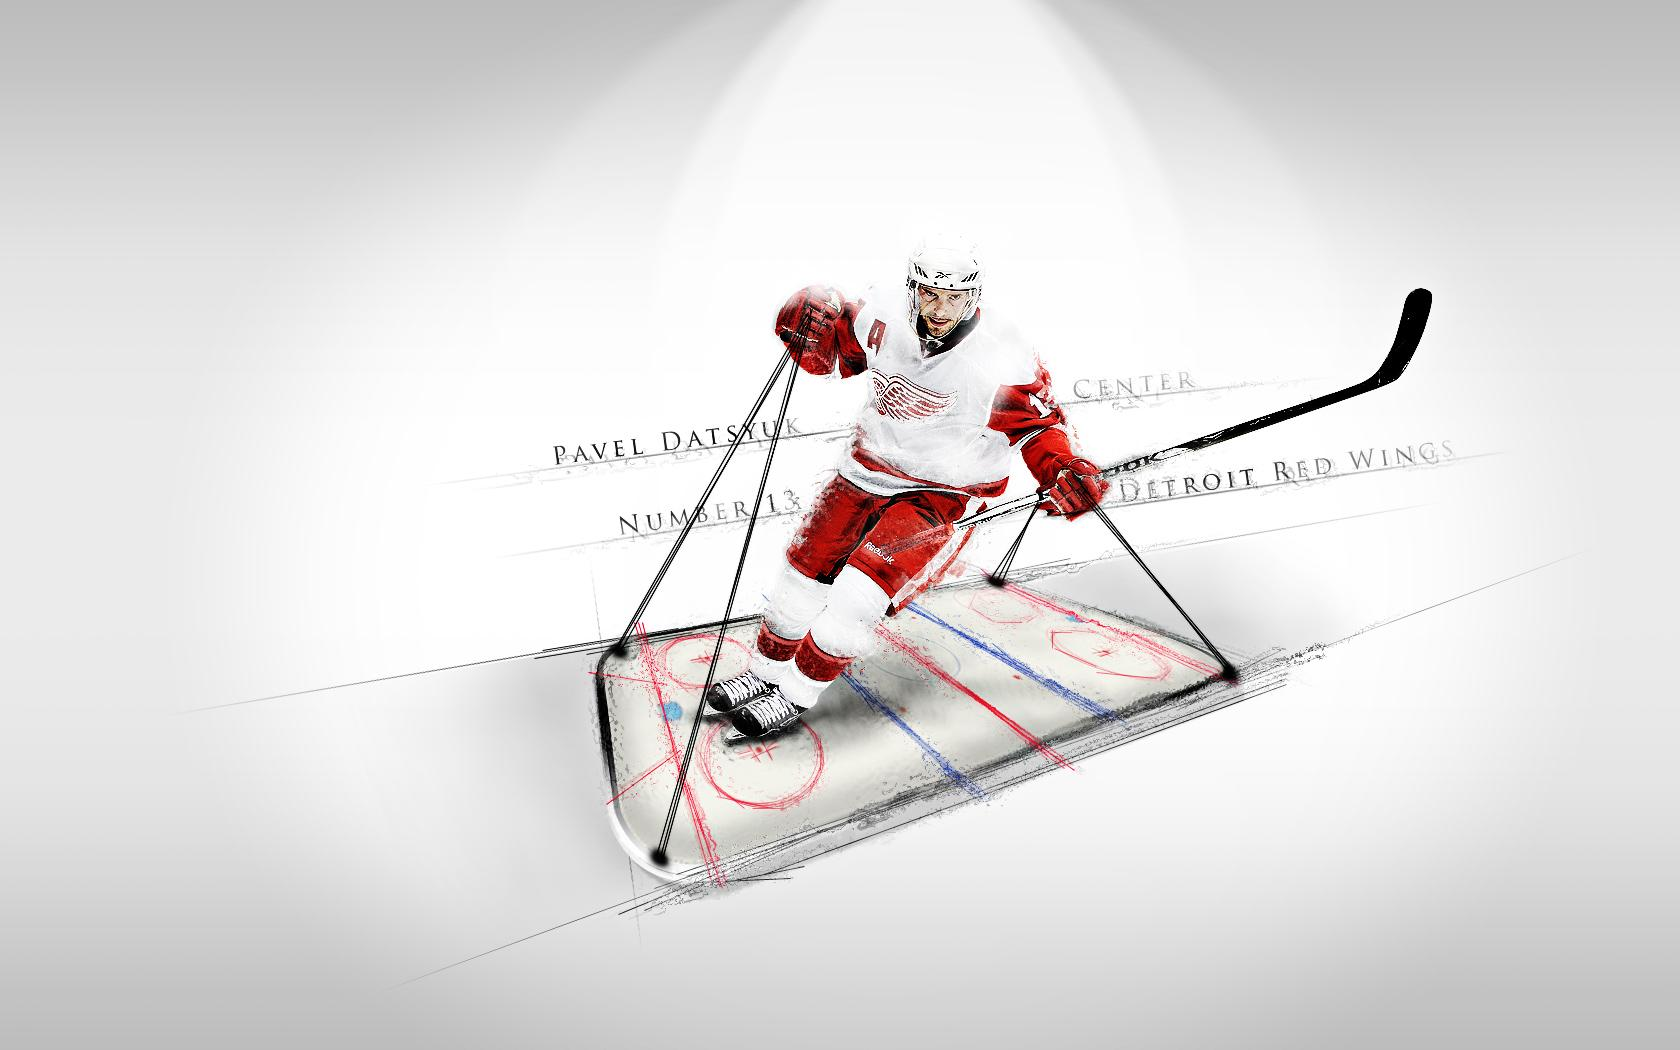 Best 49+ Pavel Datsyuk Wallpapers on HipWallpapers